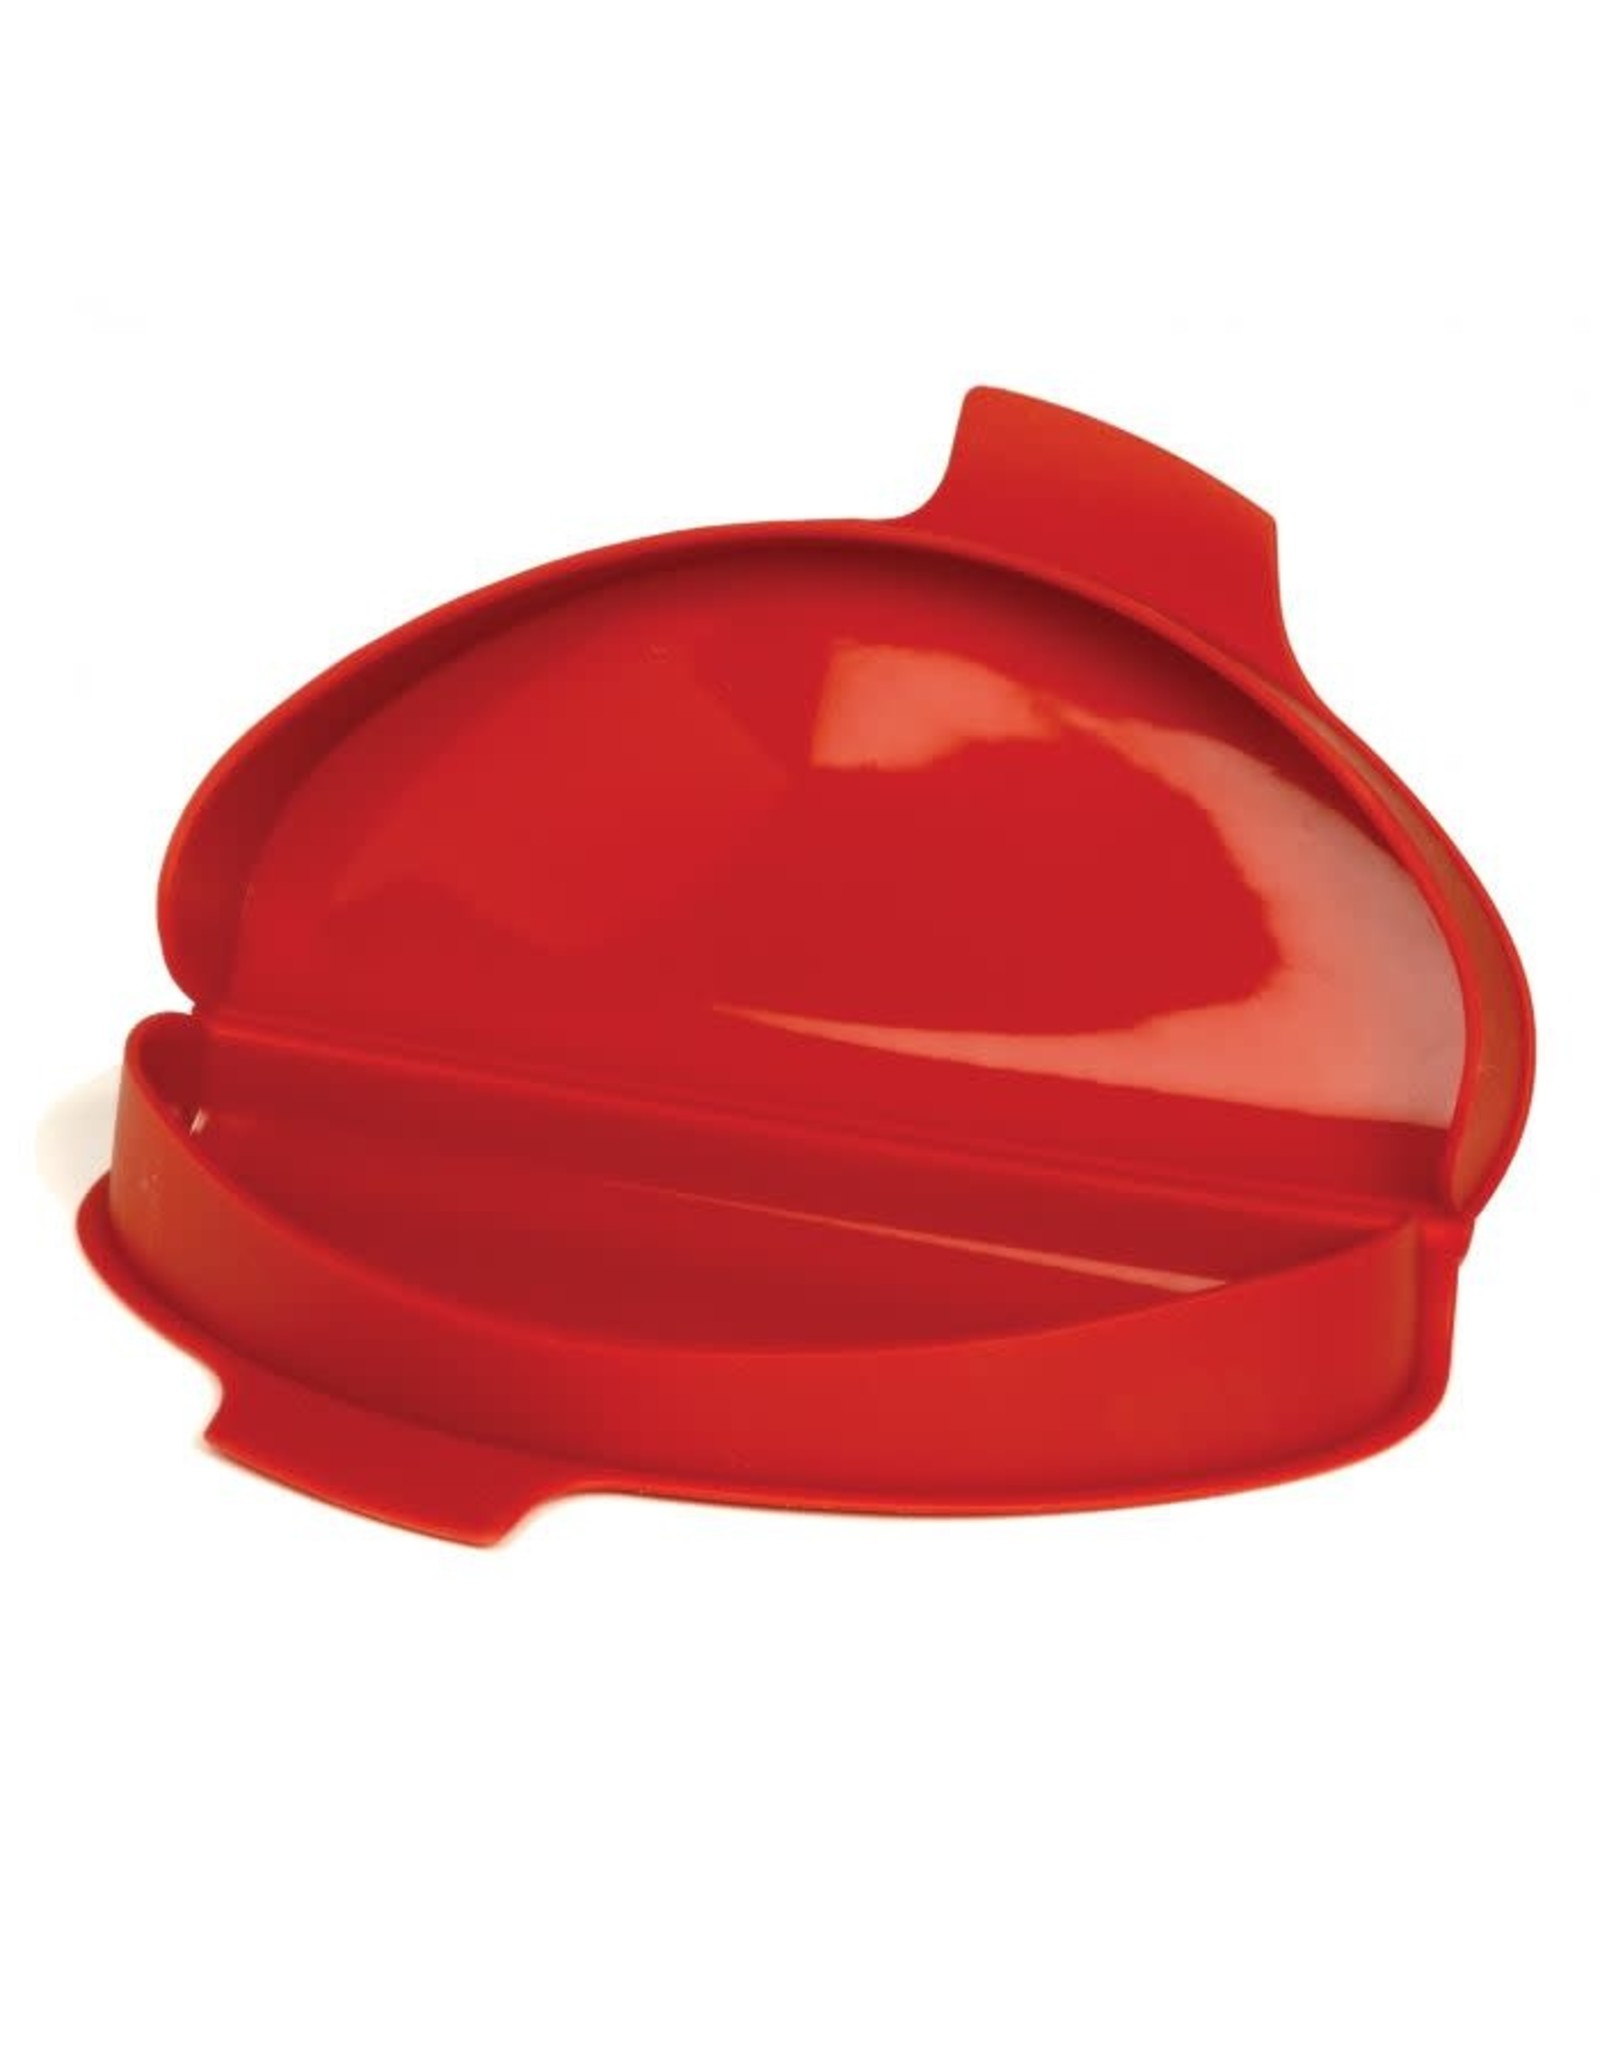 Norpro Microwave Omelet Maker, Red